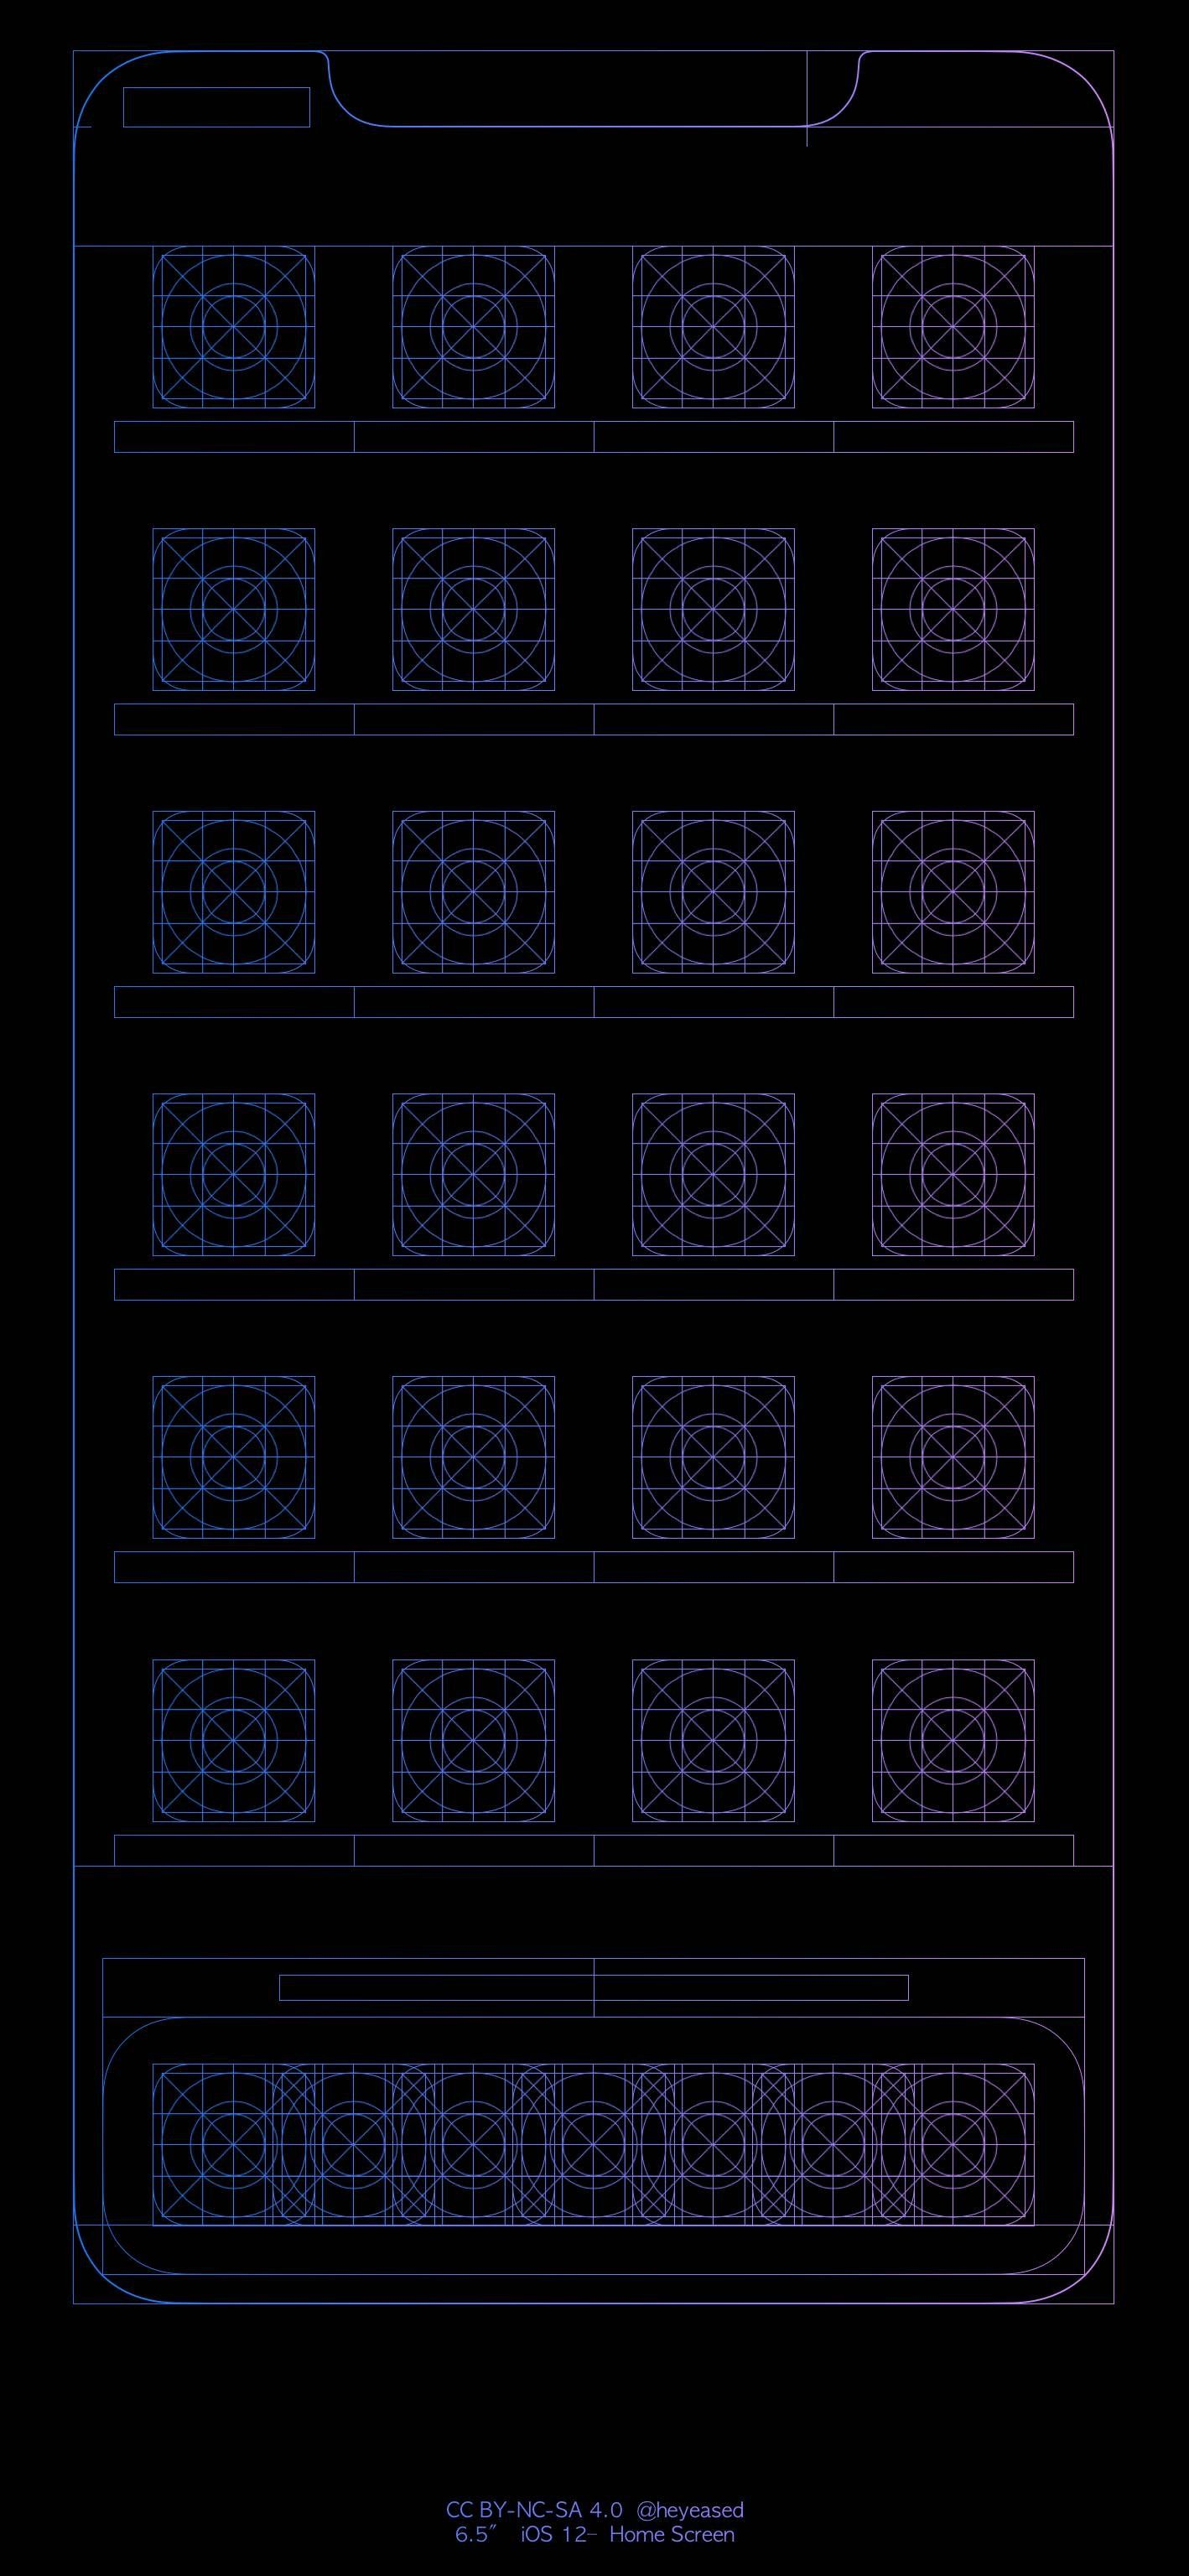 Blueprint For Xs Max Via Heyeased Home Lock Screen Iphone X Wallpapers Iphonexwallpaperfullhd Ipho Home Lock Screen Iphone Wallpaper Iphone Lockscreen